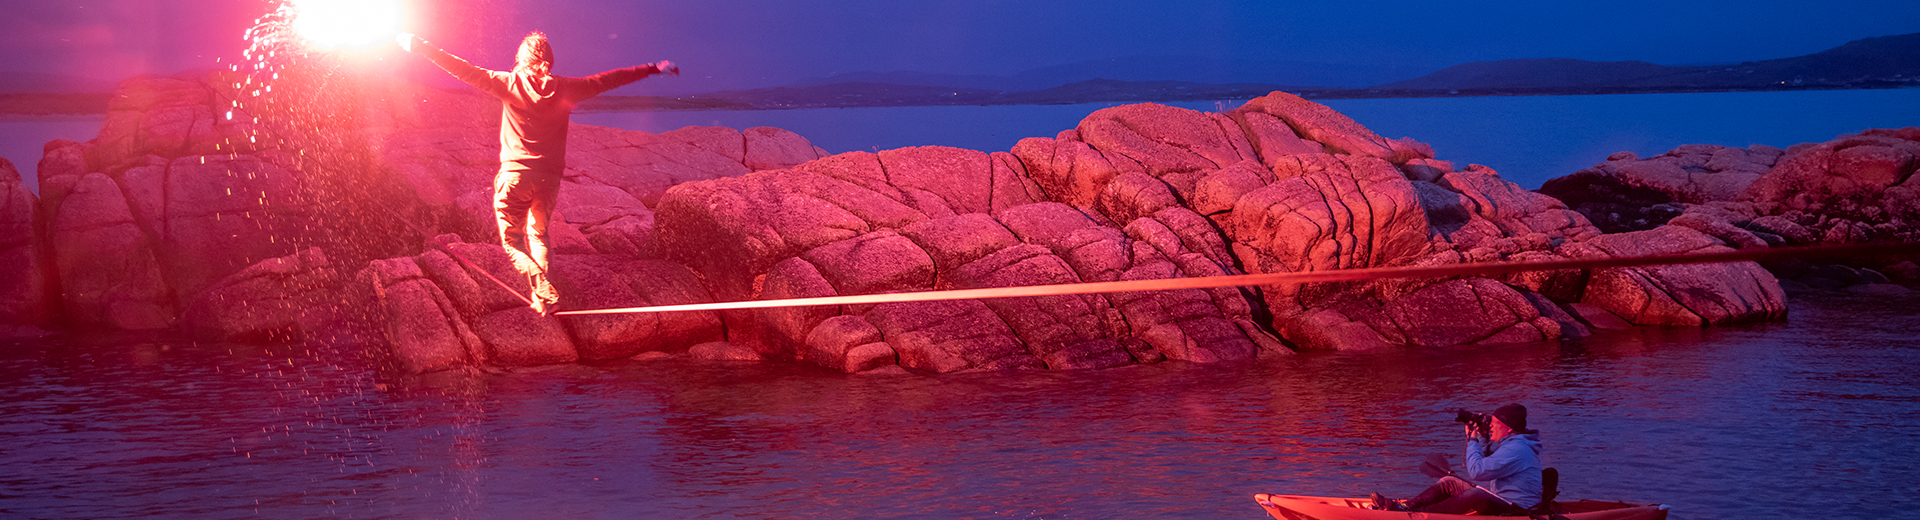 balancing on tightrope with flare signal